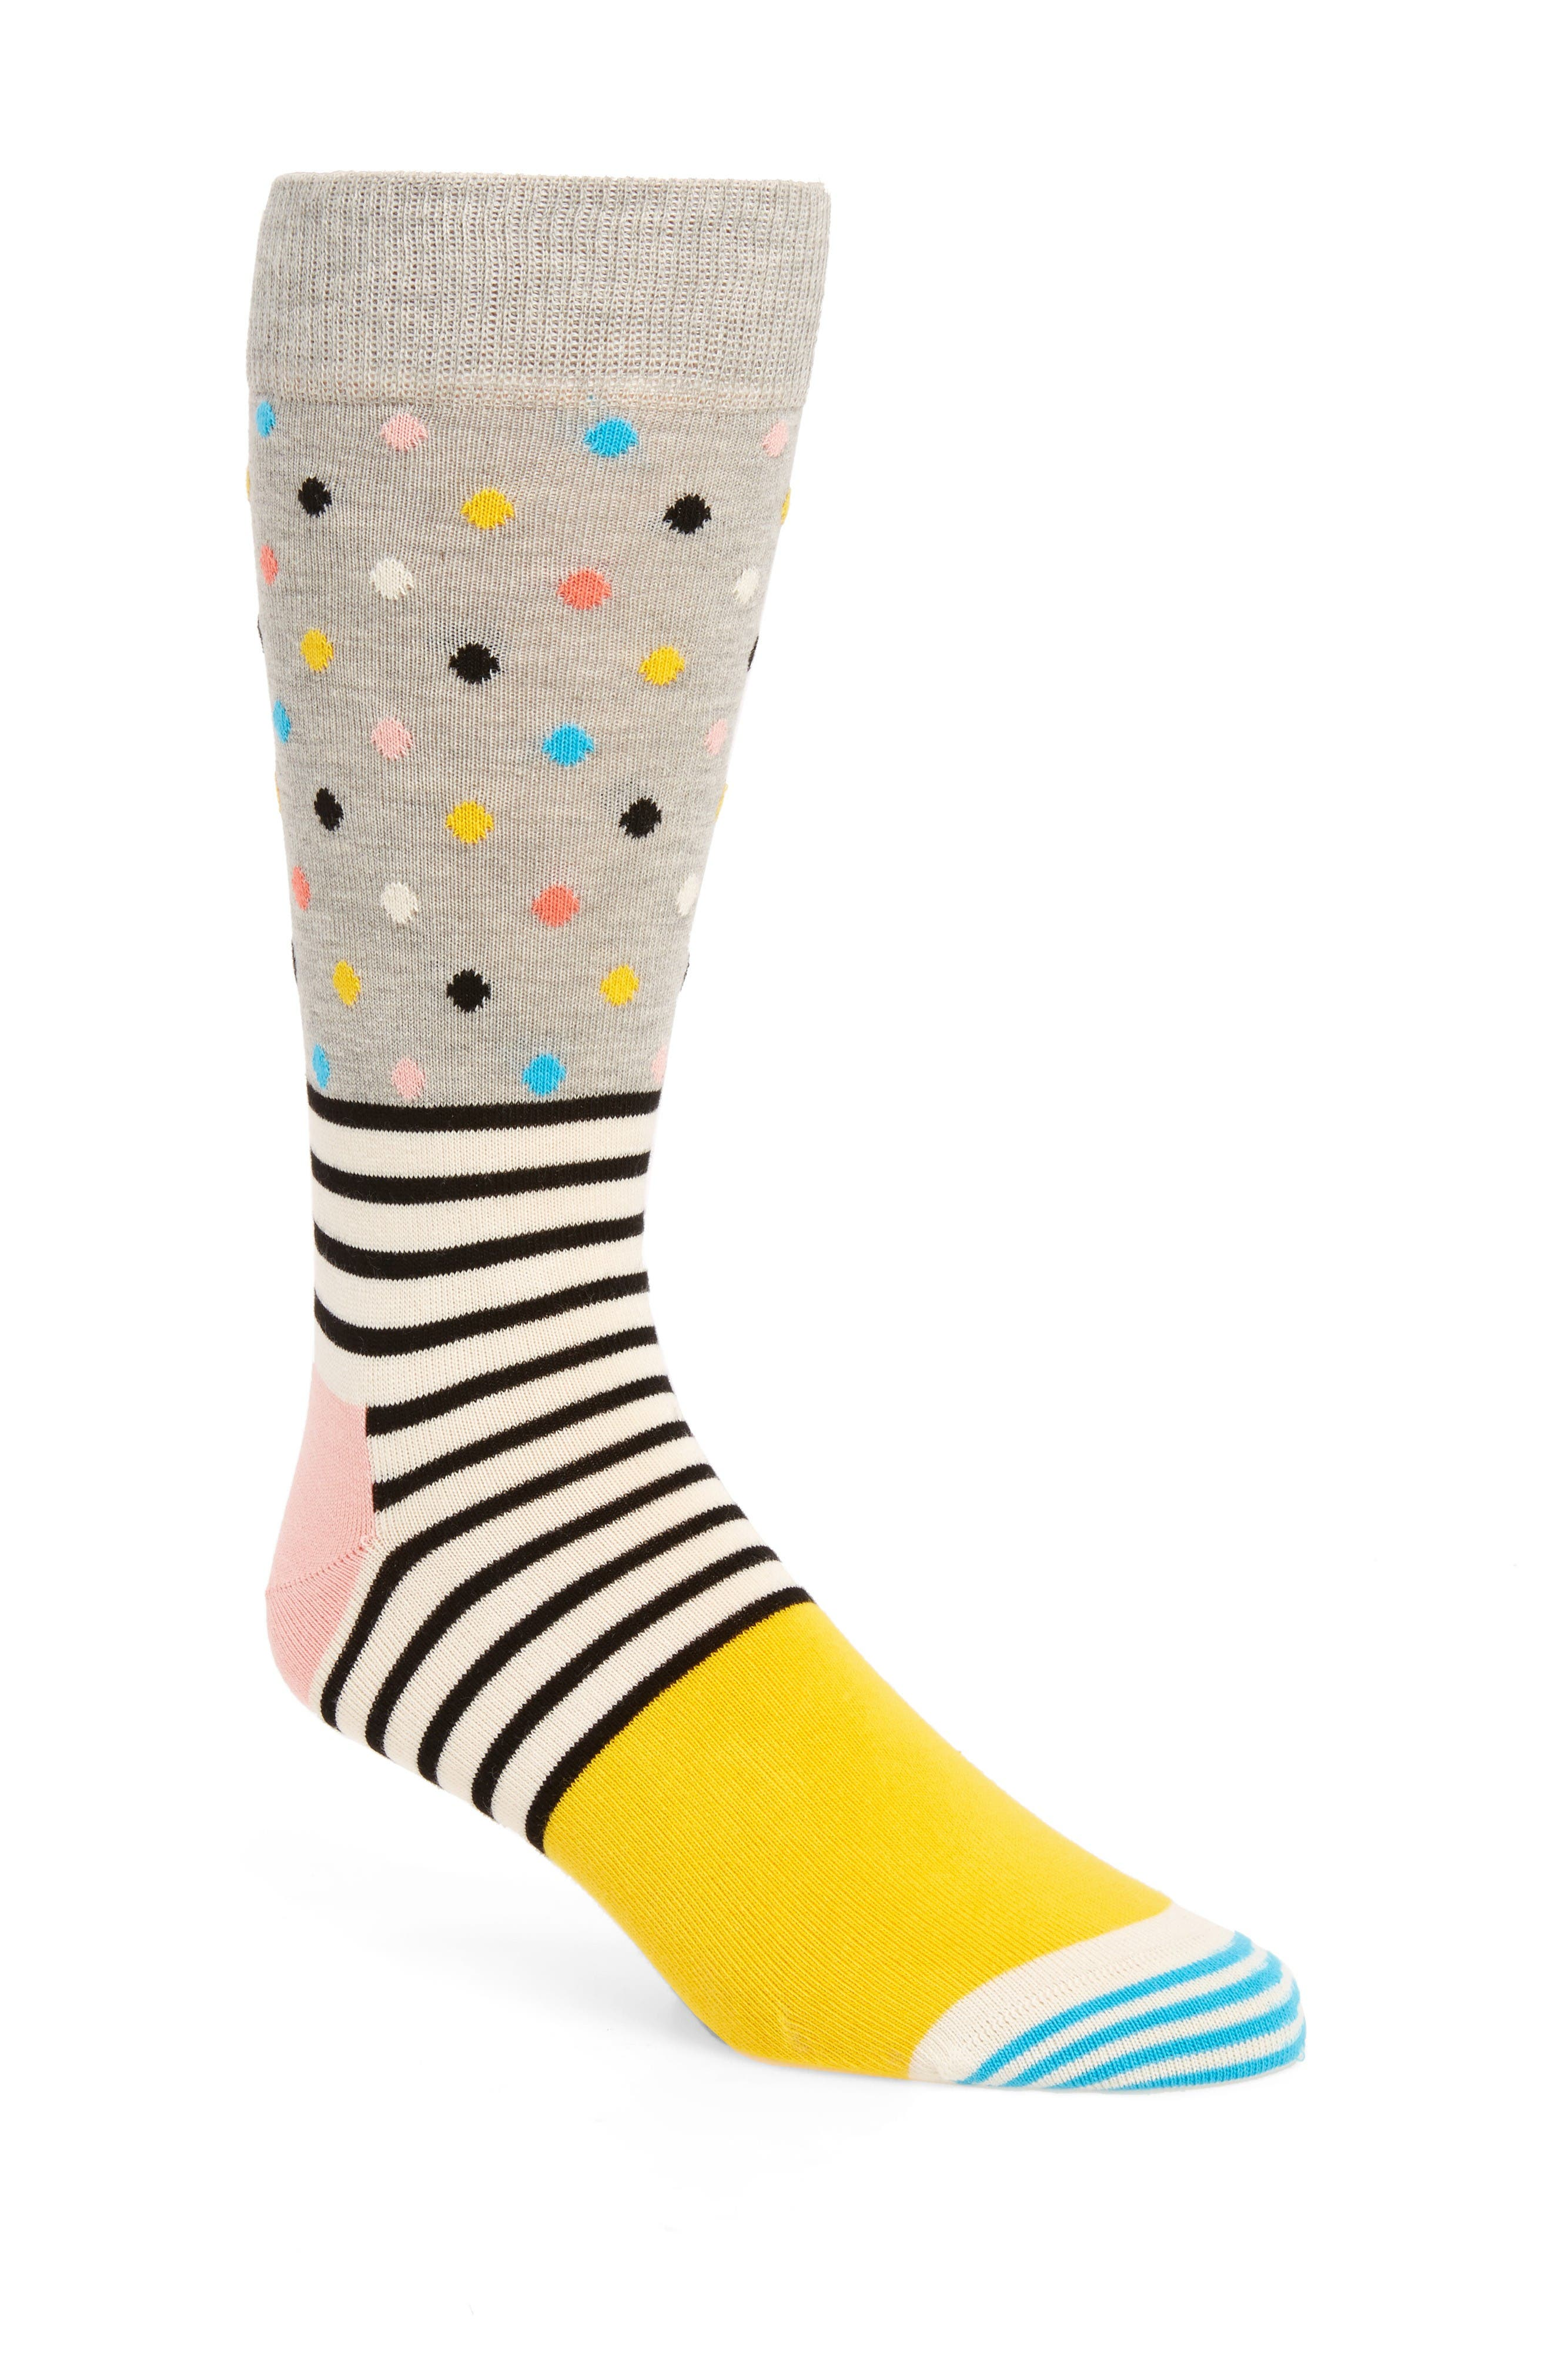 Stripe & Dot Socks,                         Main,                         color, Light Pastel Grey